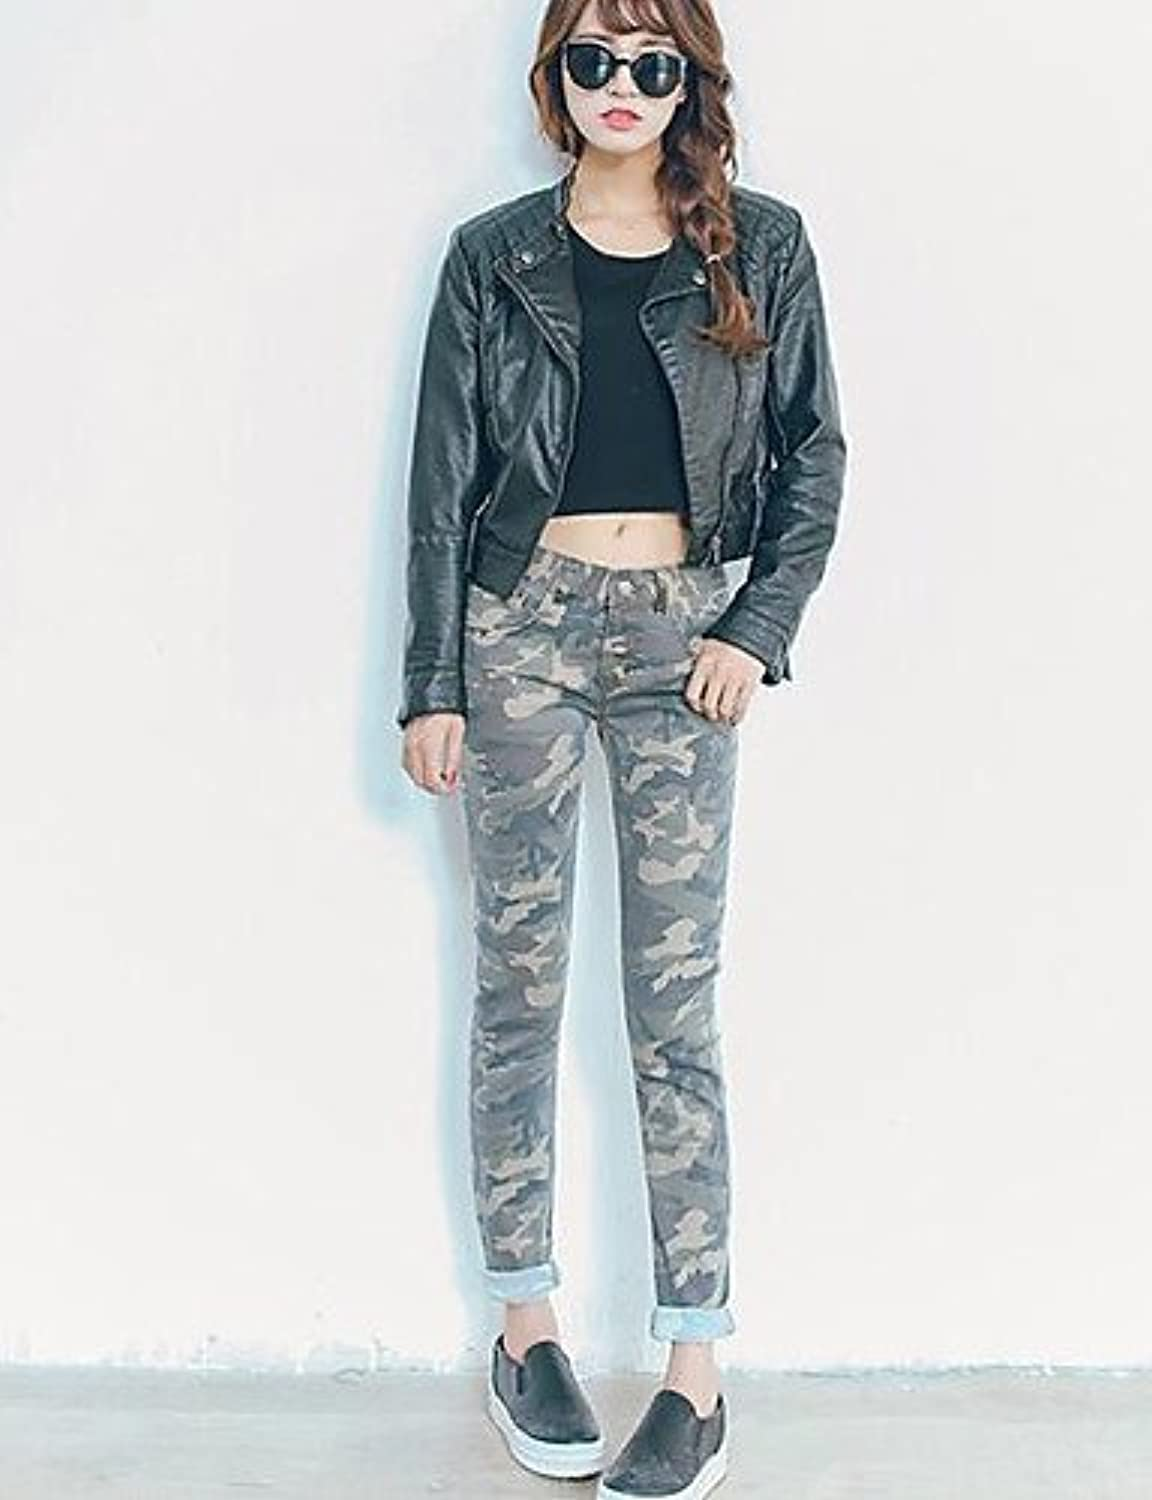 Women's Mid Rise Stretchy Jeans Pants,Simple Skinny Camouflage